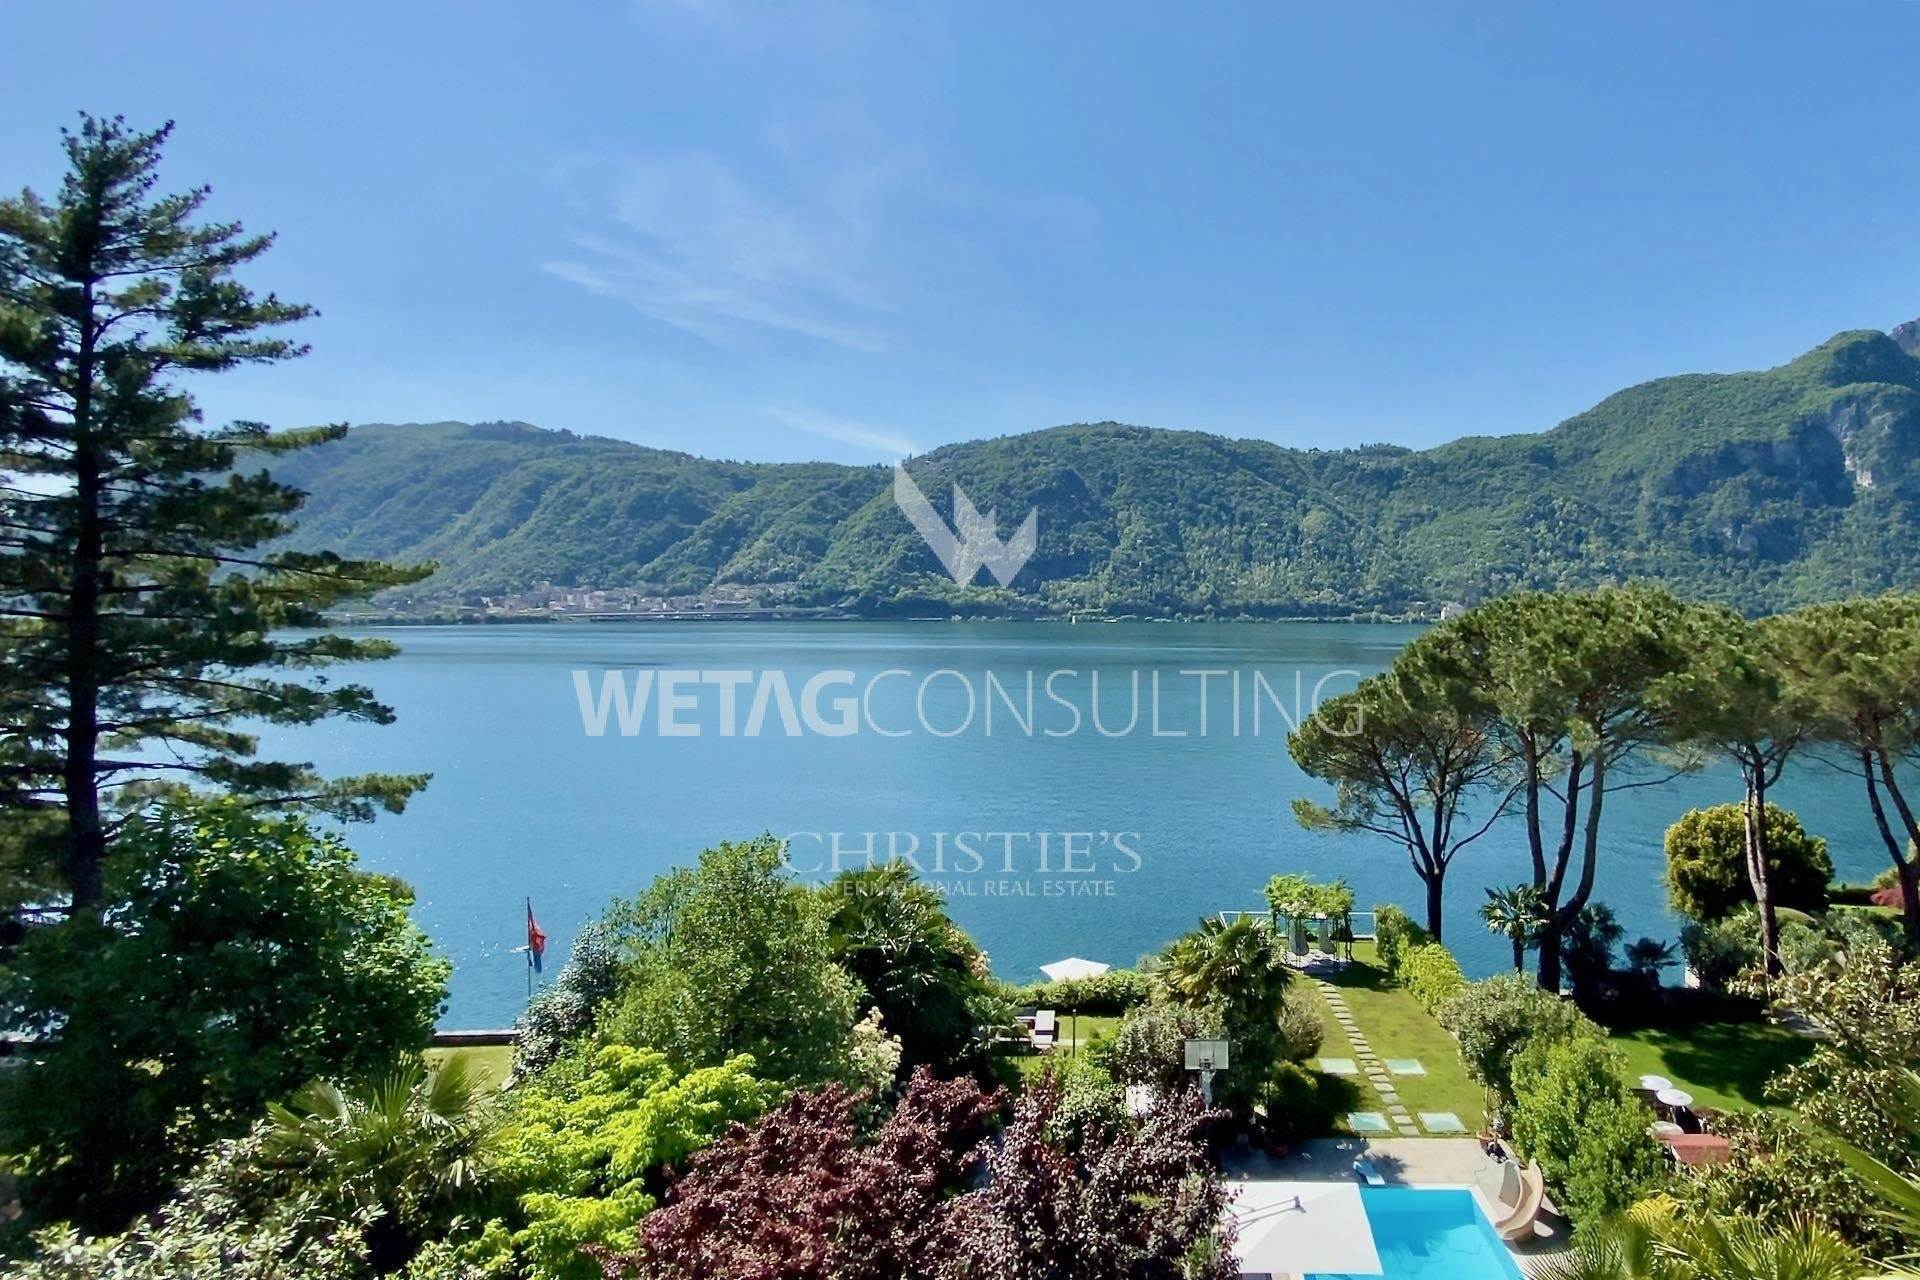 Villa/Townhouse for Sale at Gorgeous lakefront villa with boathouse in Bissone for sale Bissone, Ticino,6816 Switzerland